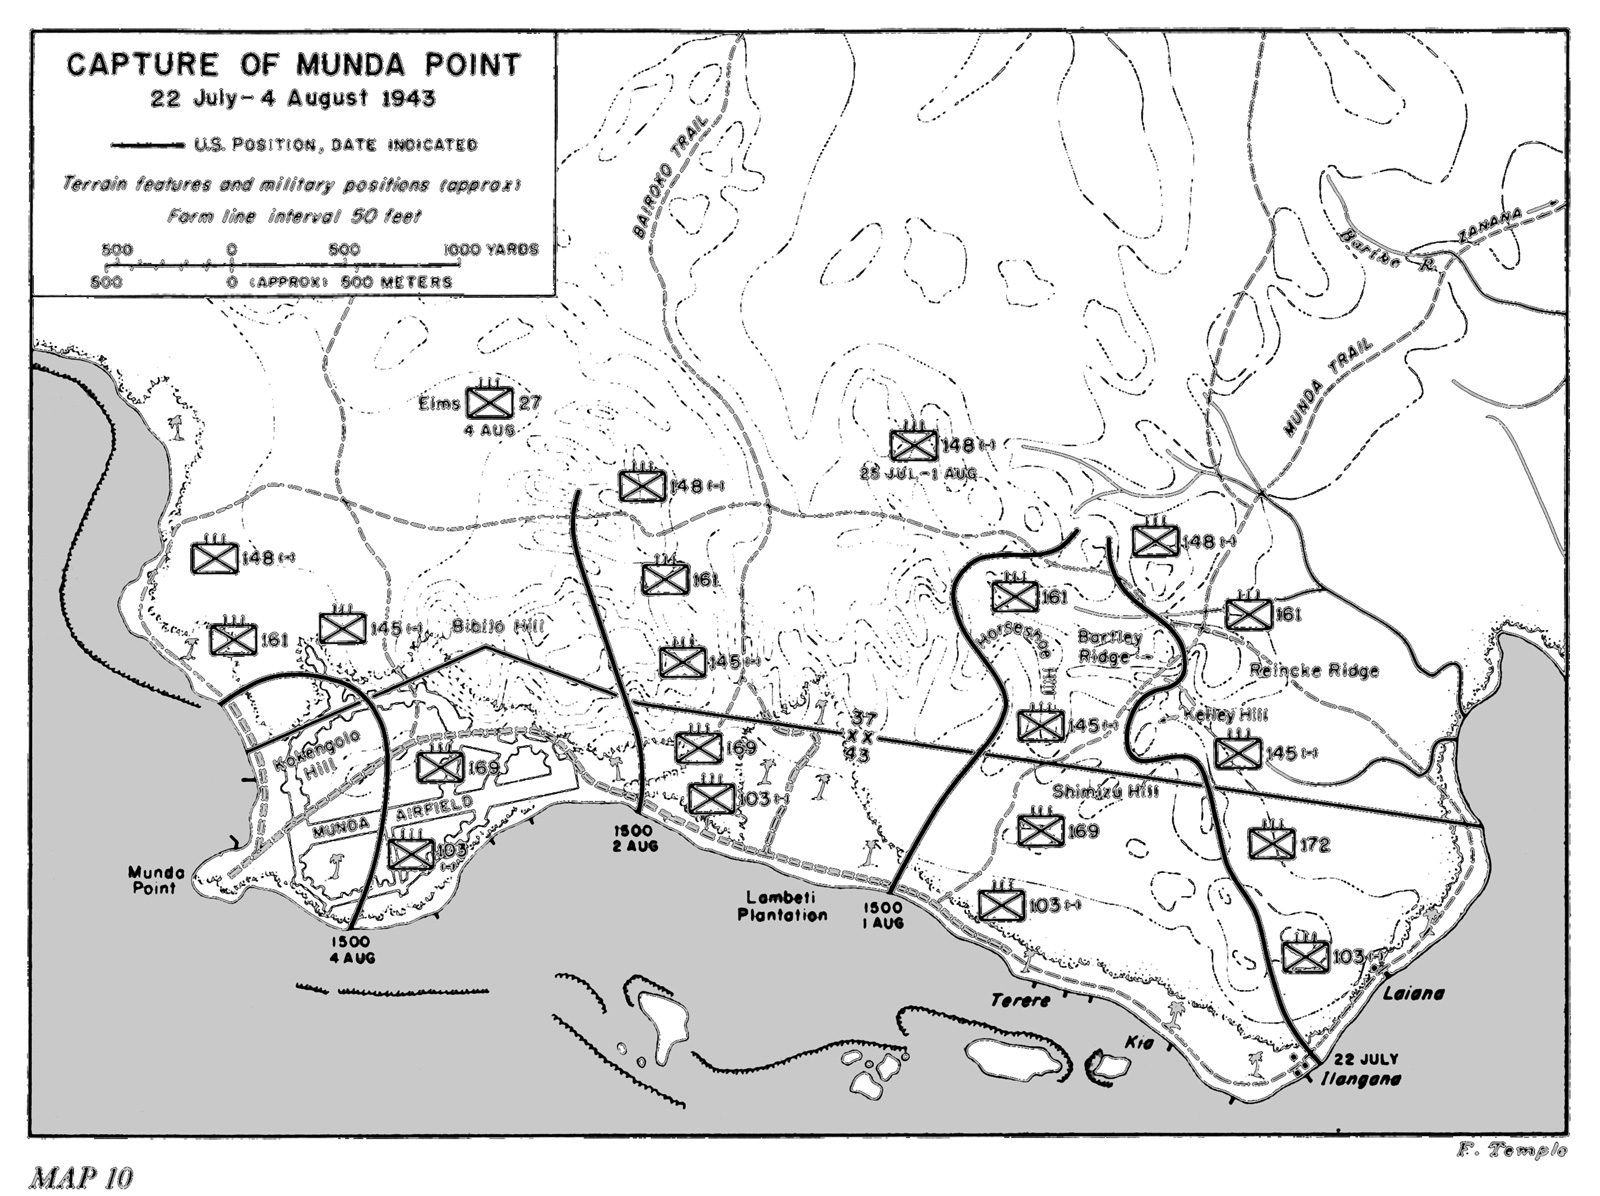 Map 10. Capture of Munda Point